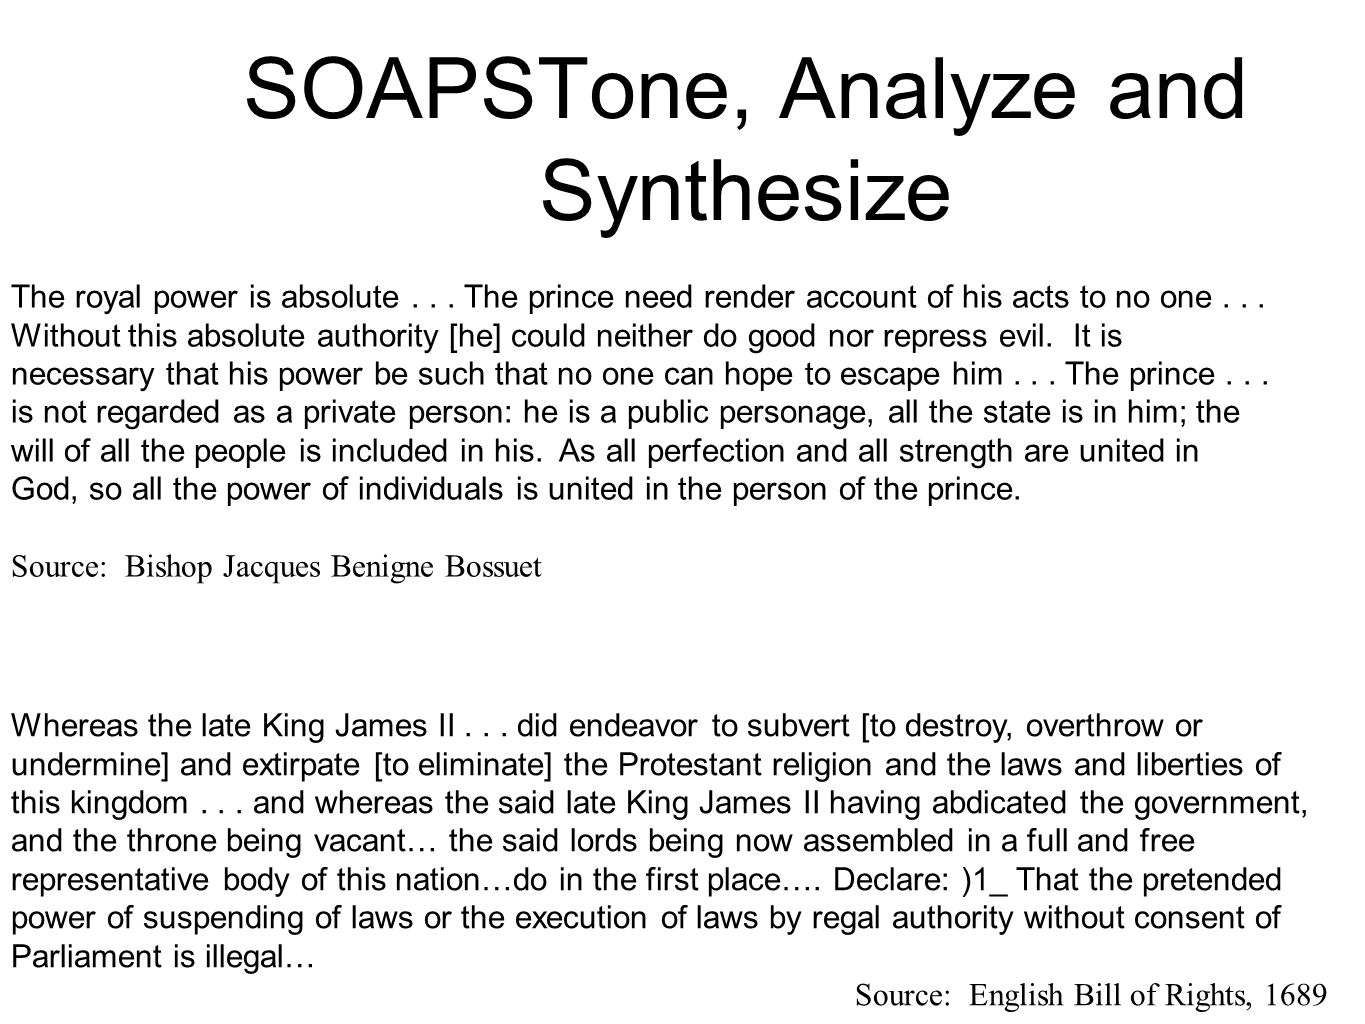 SOAPSTone, Analyze and Synthesize The royal power is absolute... The prince need render account of his acts to no one... Without this absolute authori